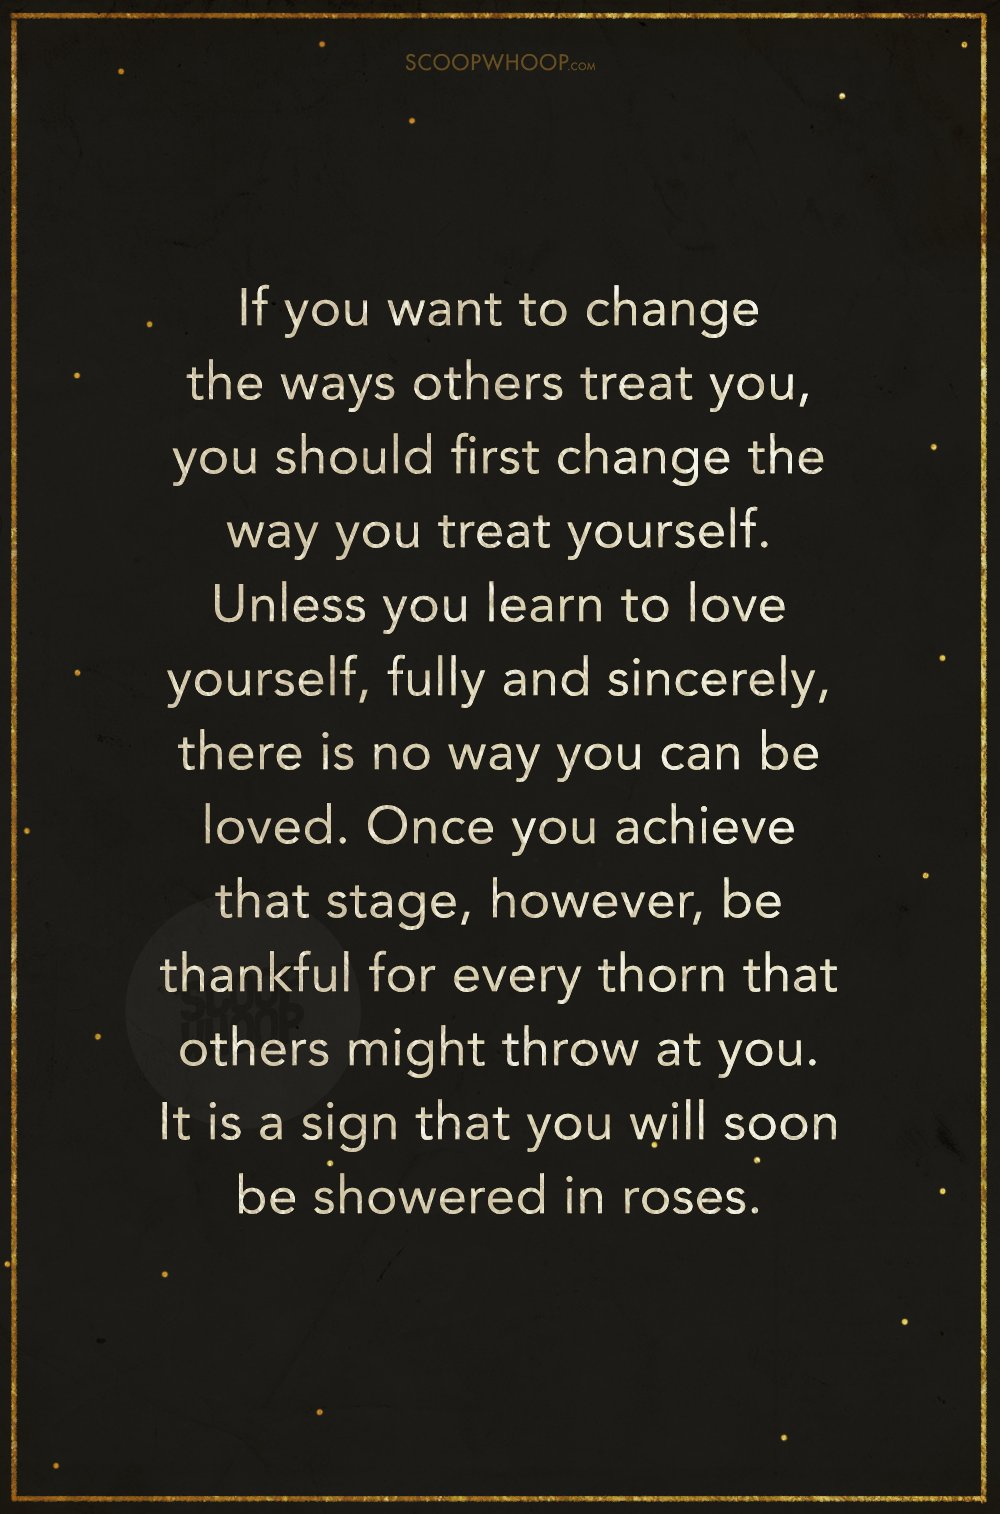 The 40 Rules Of Love By Shams Tabrizi That Make Up The True Essence